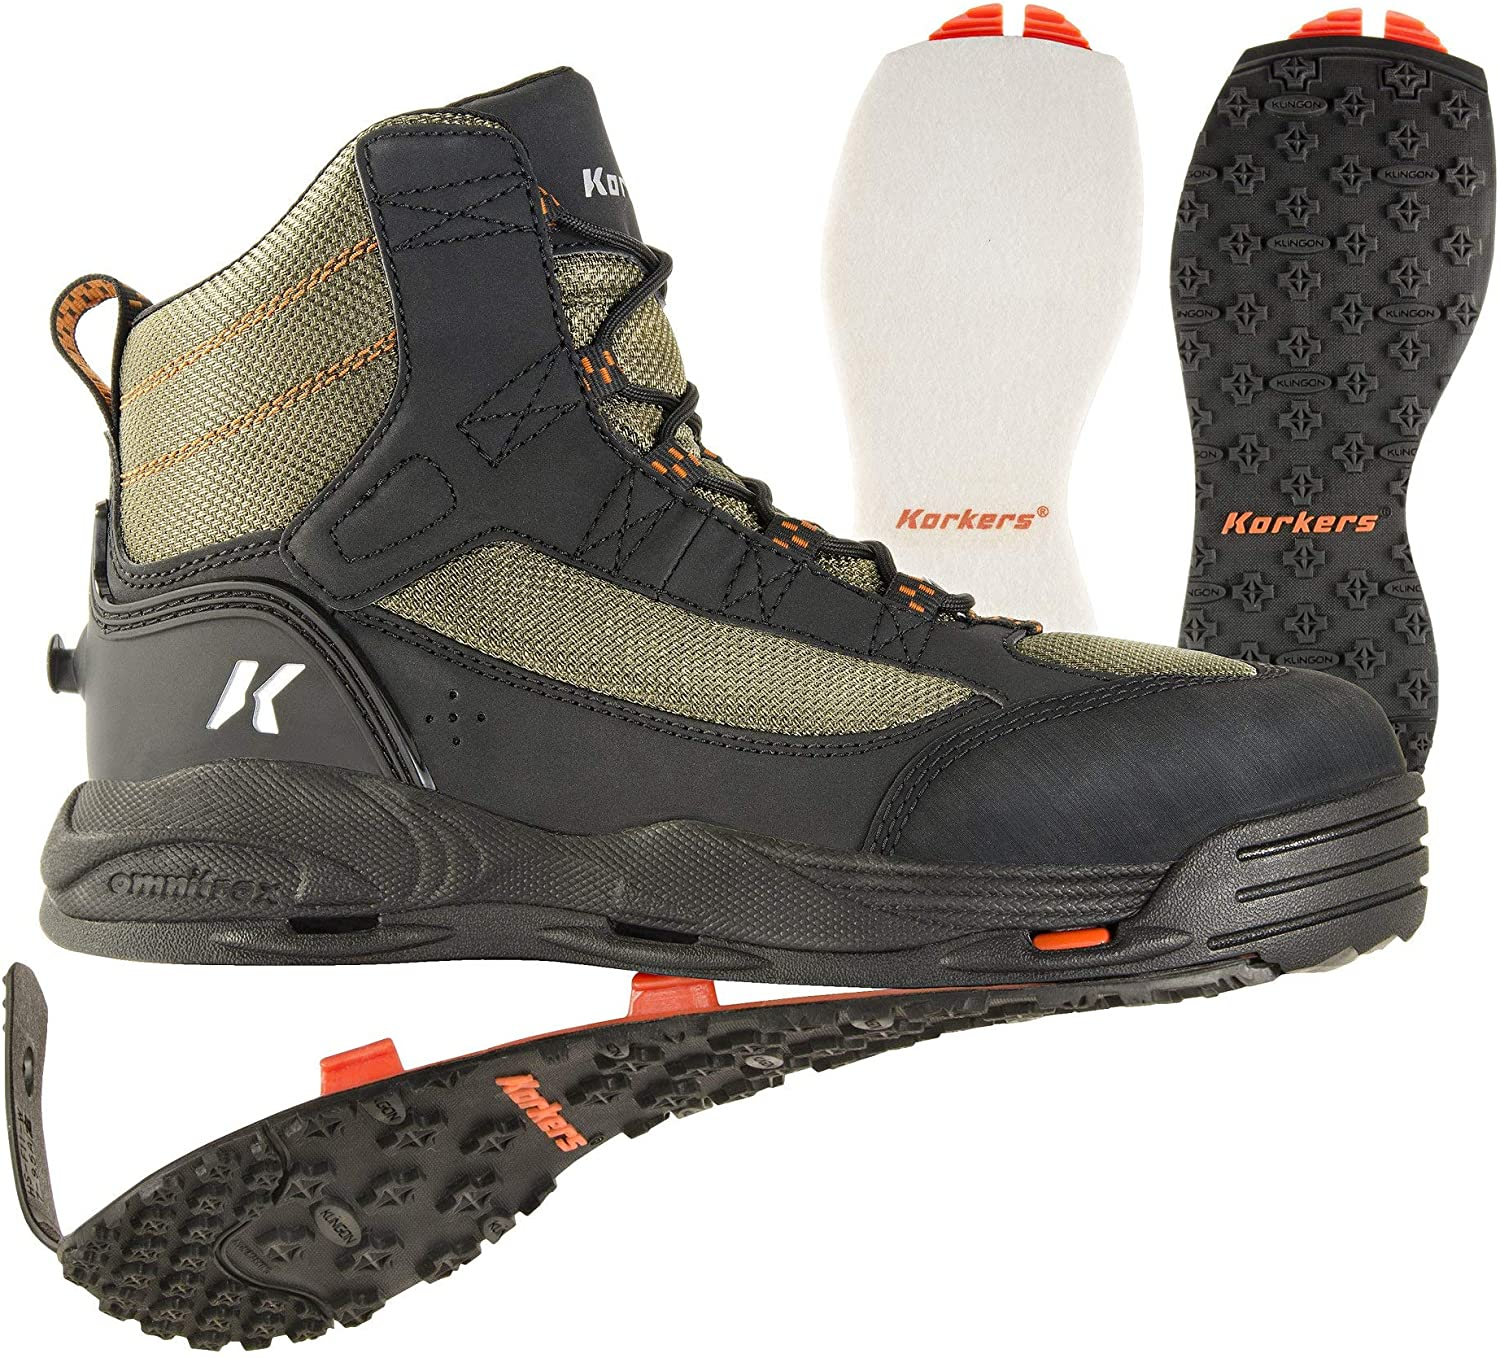 Korkers Greenback Wading Boots for fly fishing and wading review